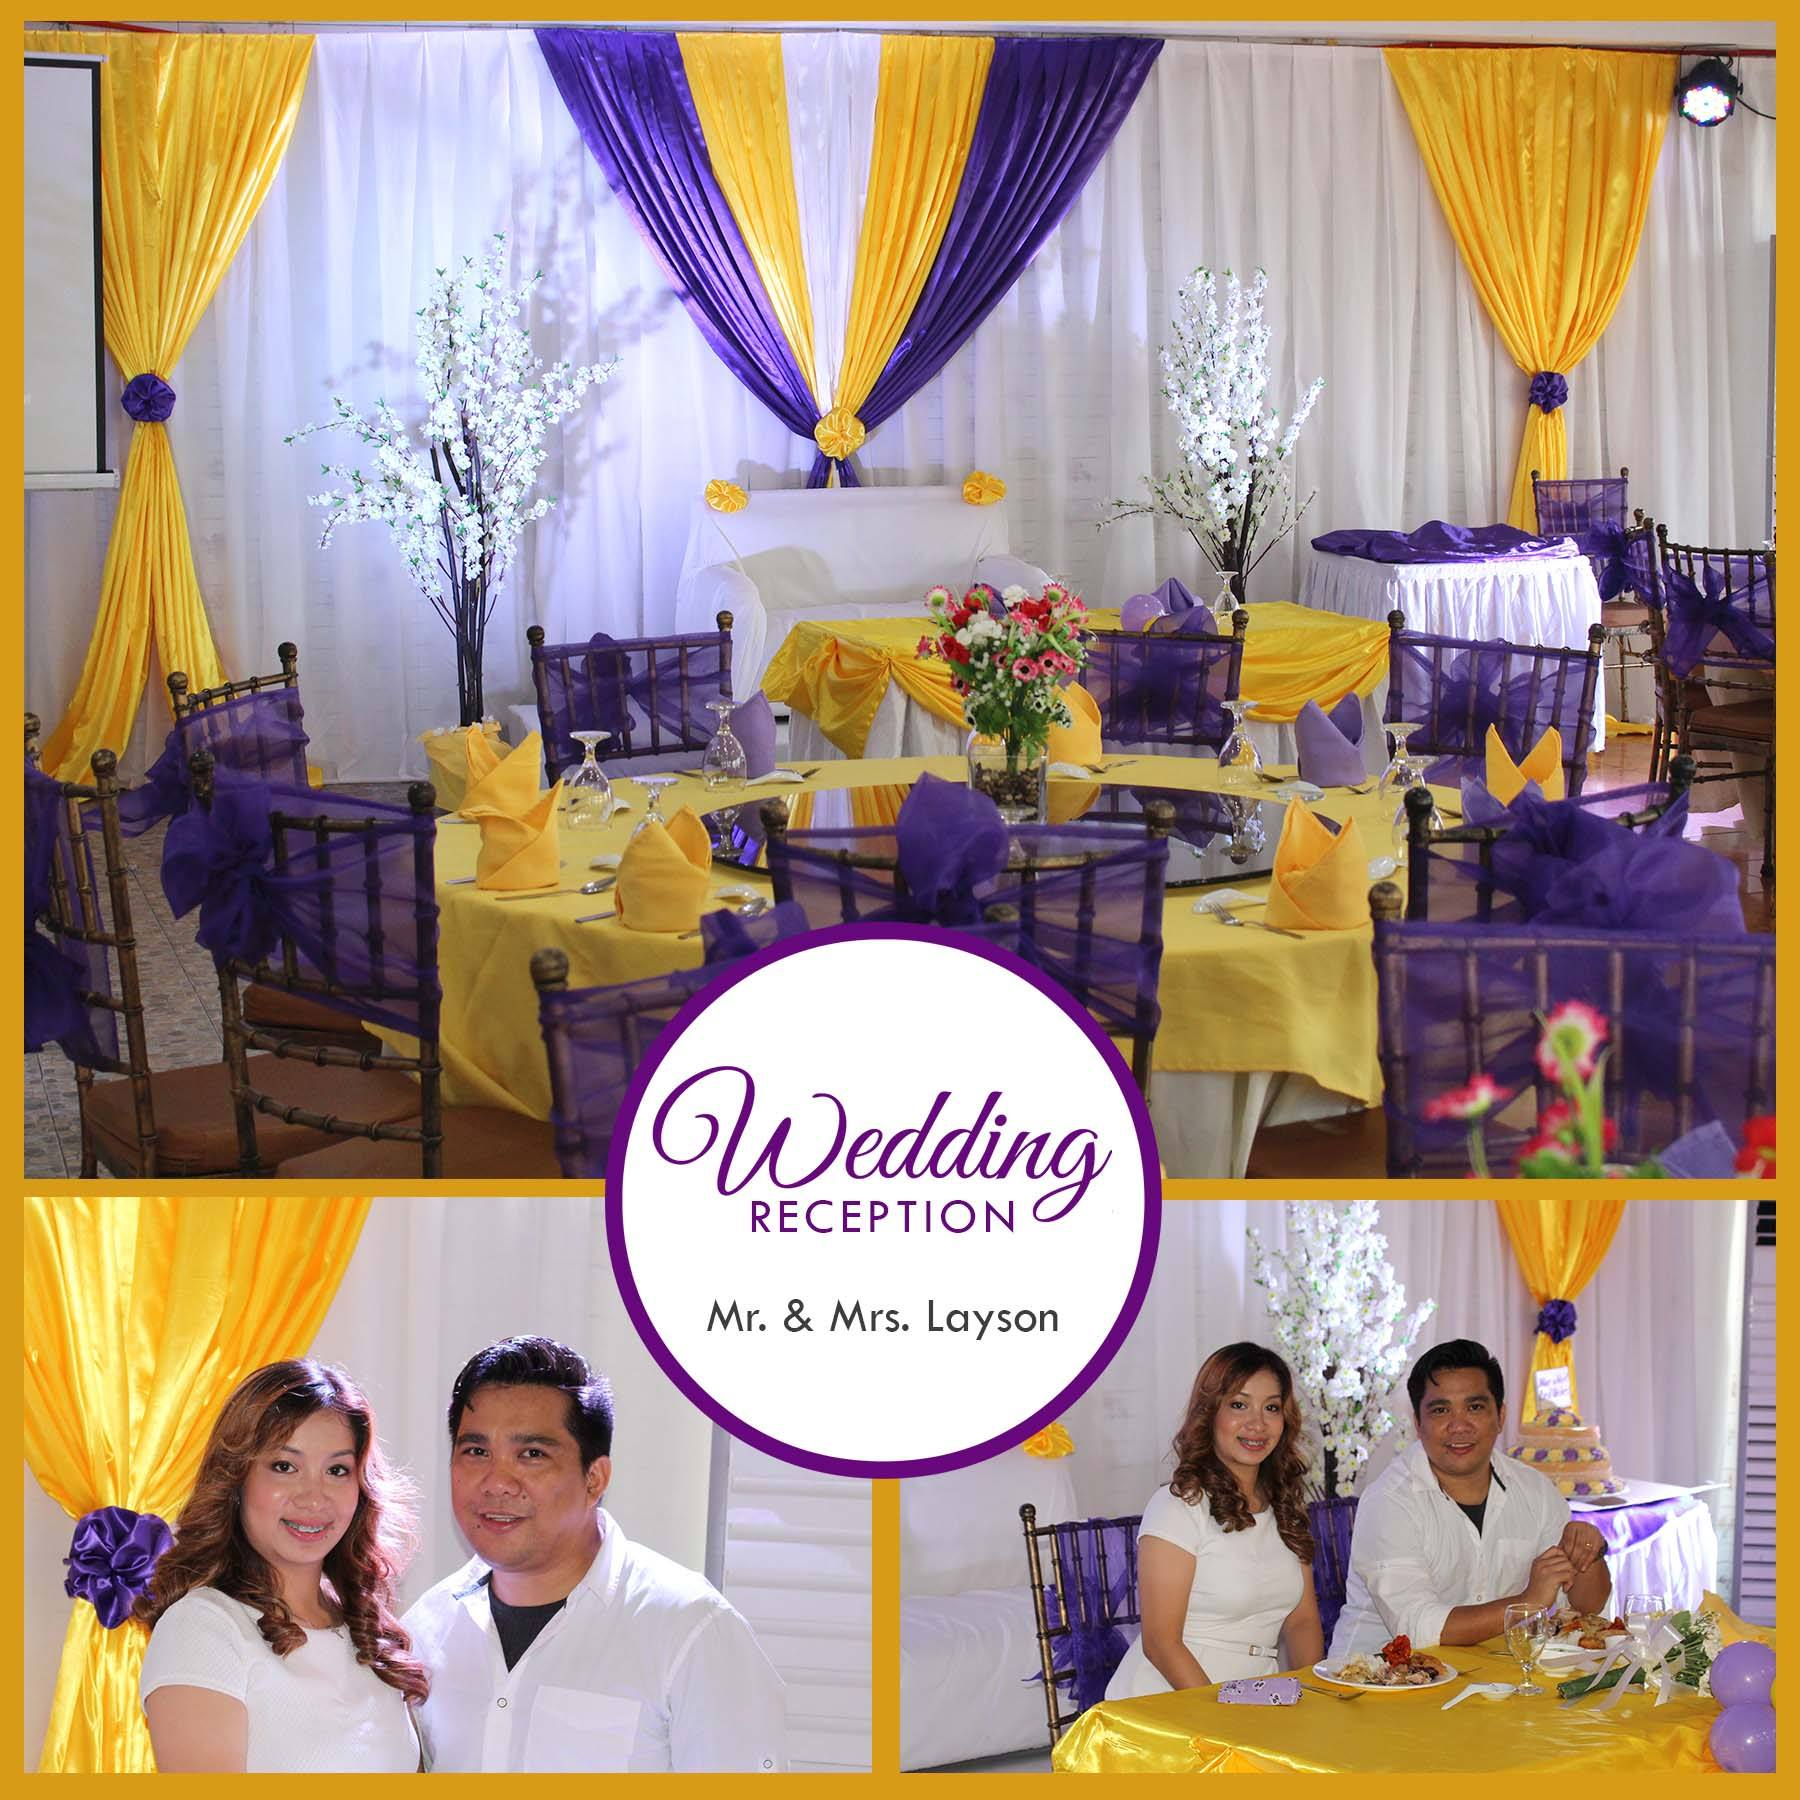 PARTIES AND EVENT VENUE METRO MANILA www.rooms498.com